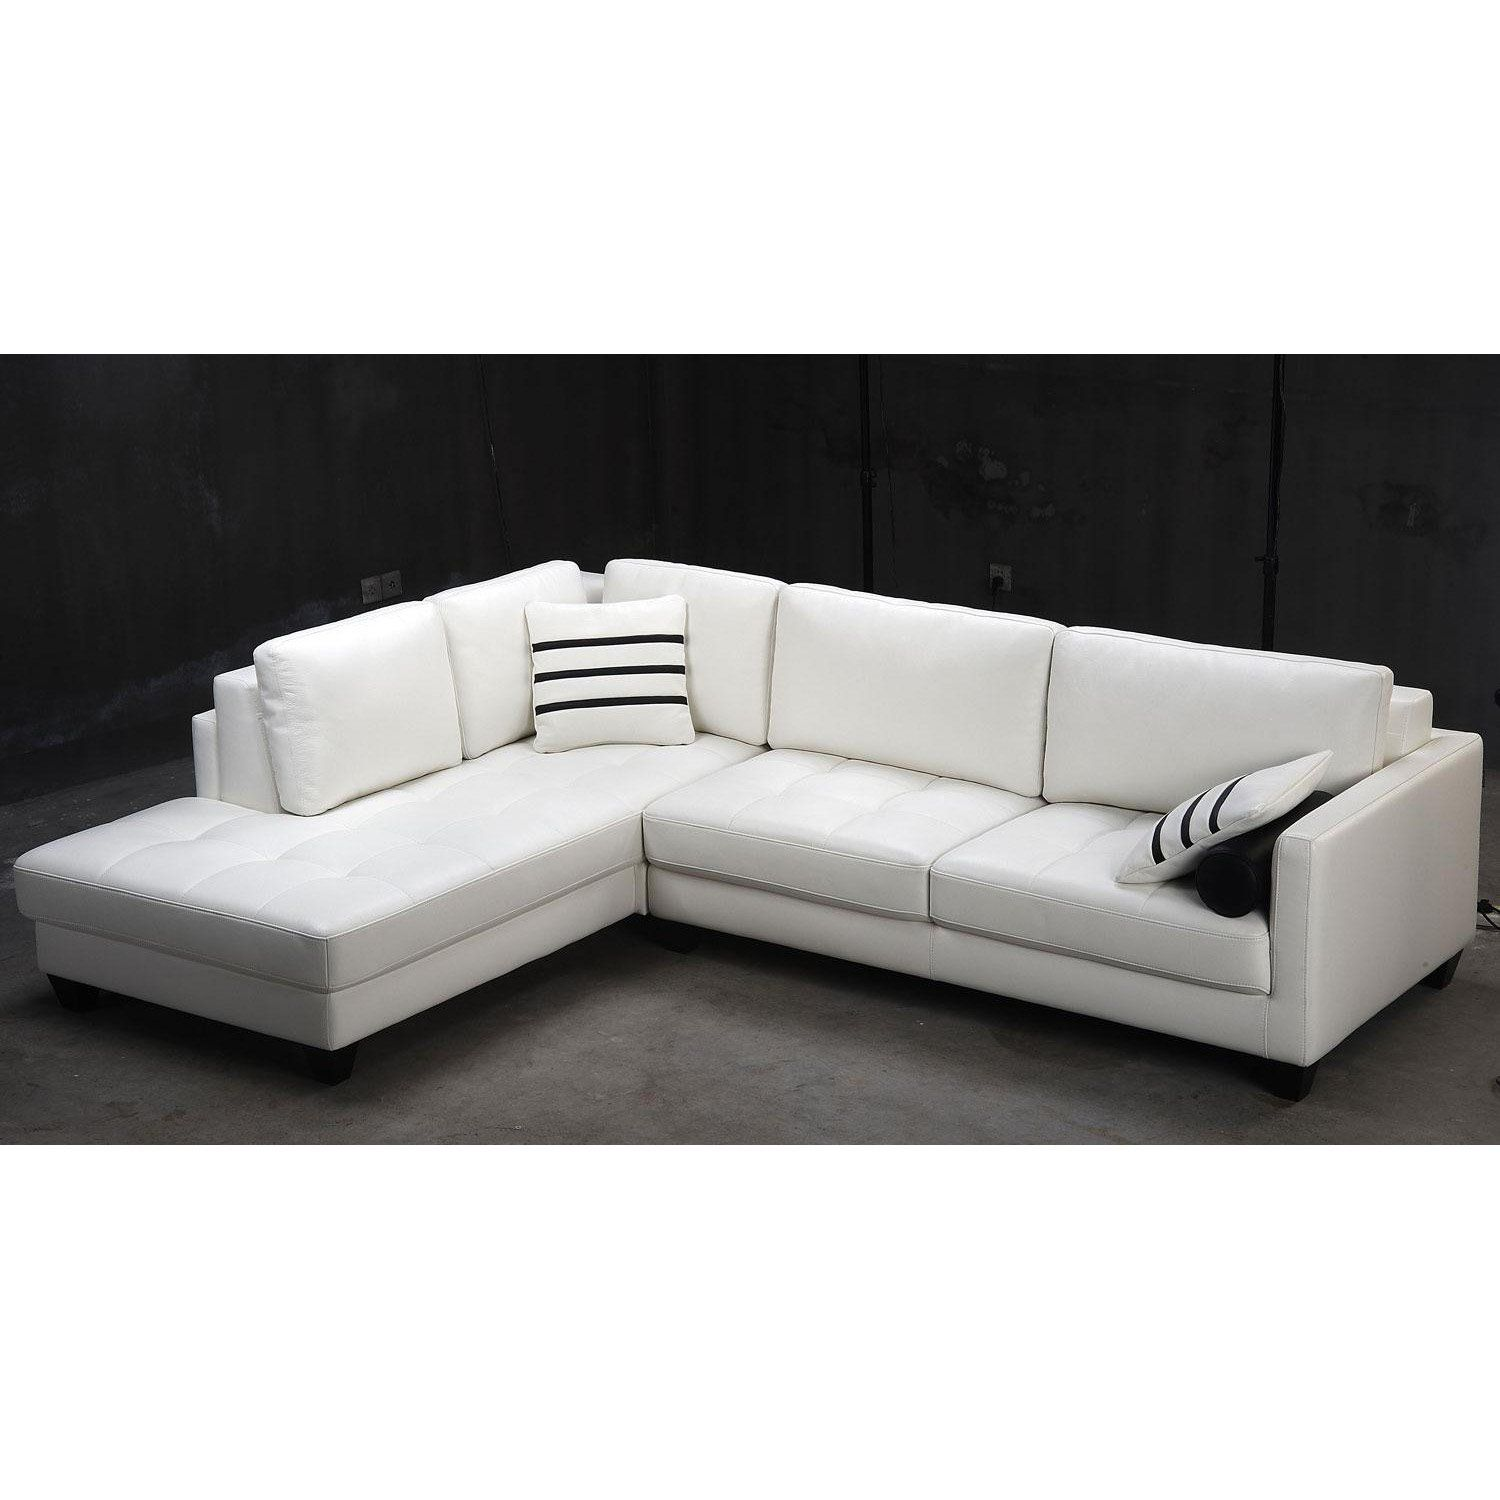 Tosh Furniture Modern White Leather Sectional Sofa The Tosh Furniture Modern White Lea White Leather Sofas Modern Leather Sectional Sofas White Leather Couch